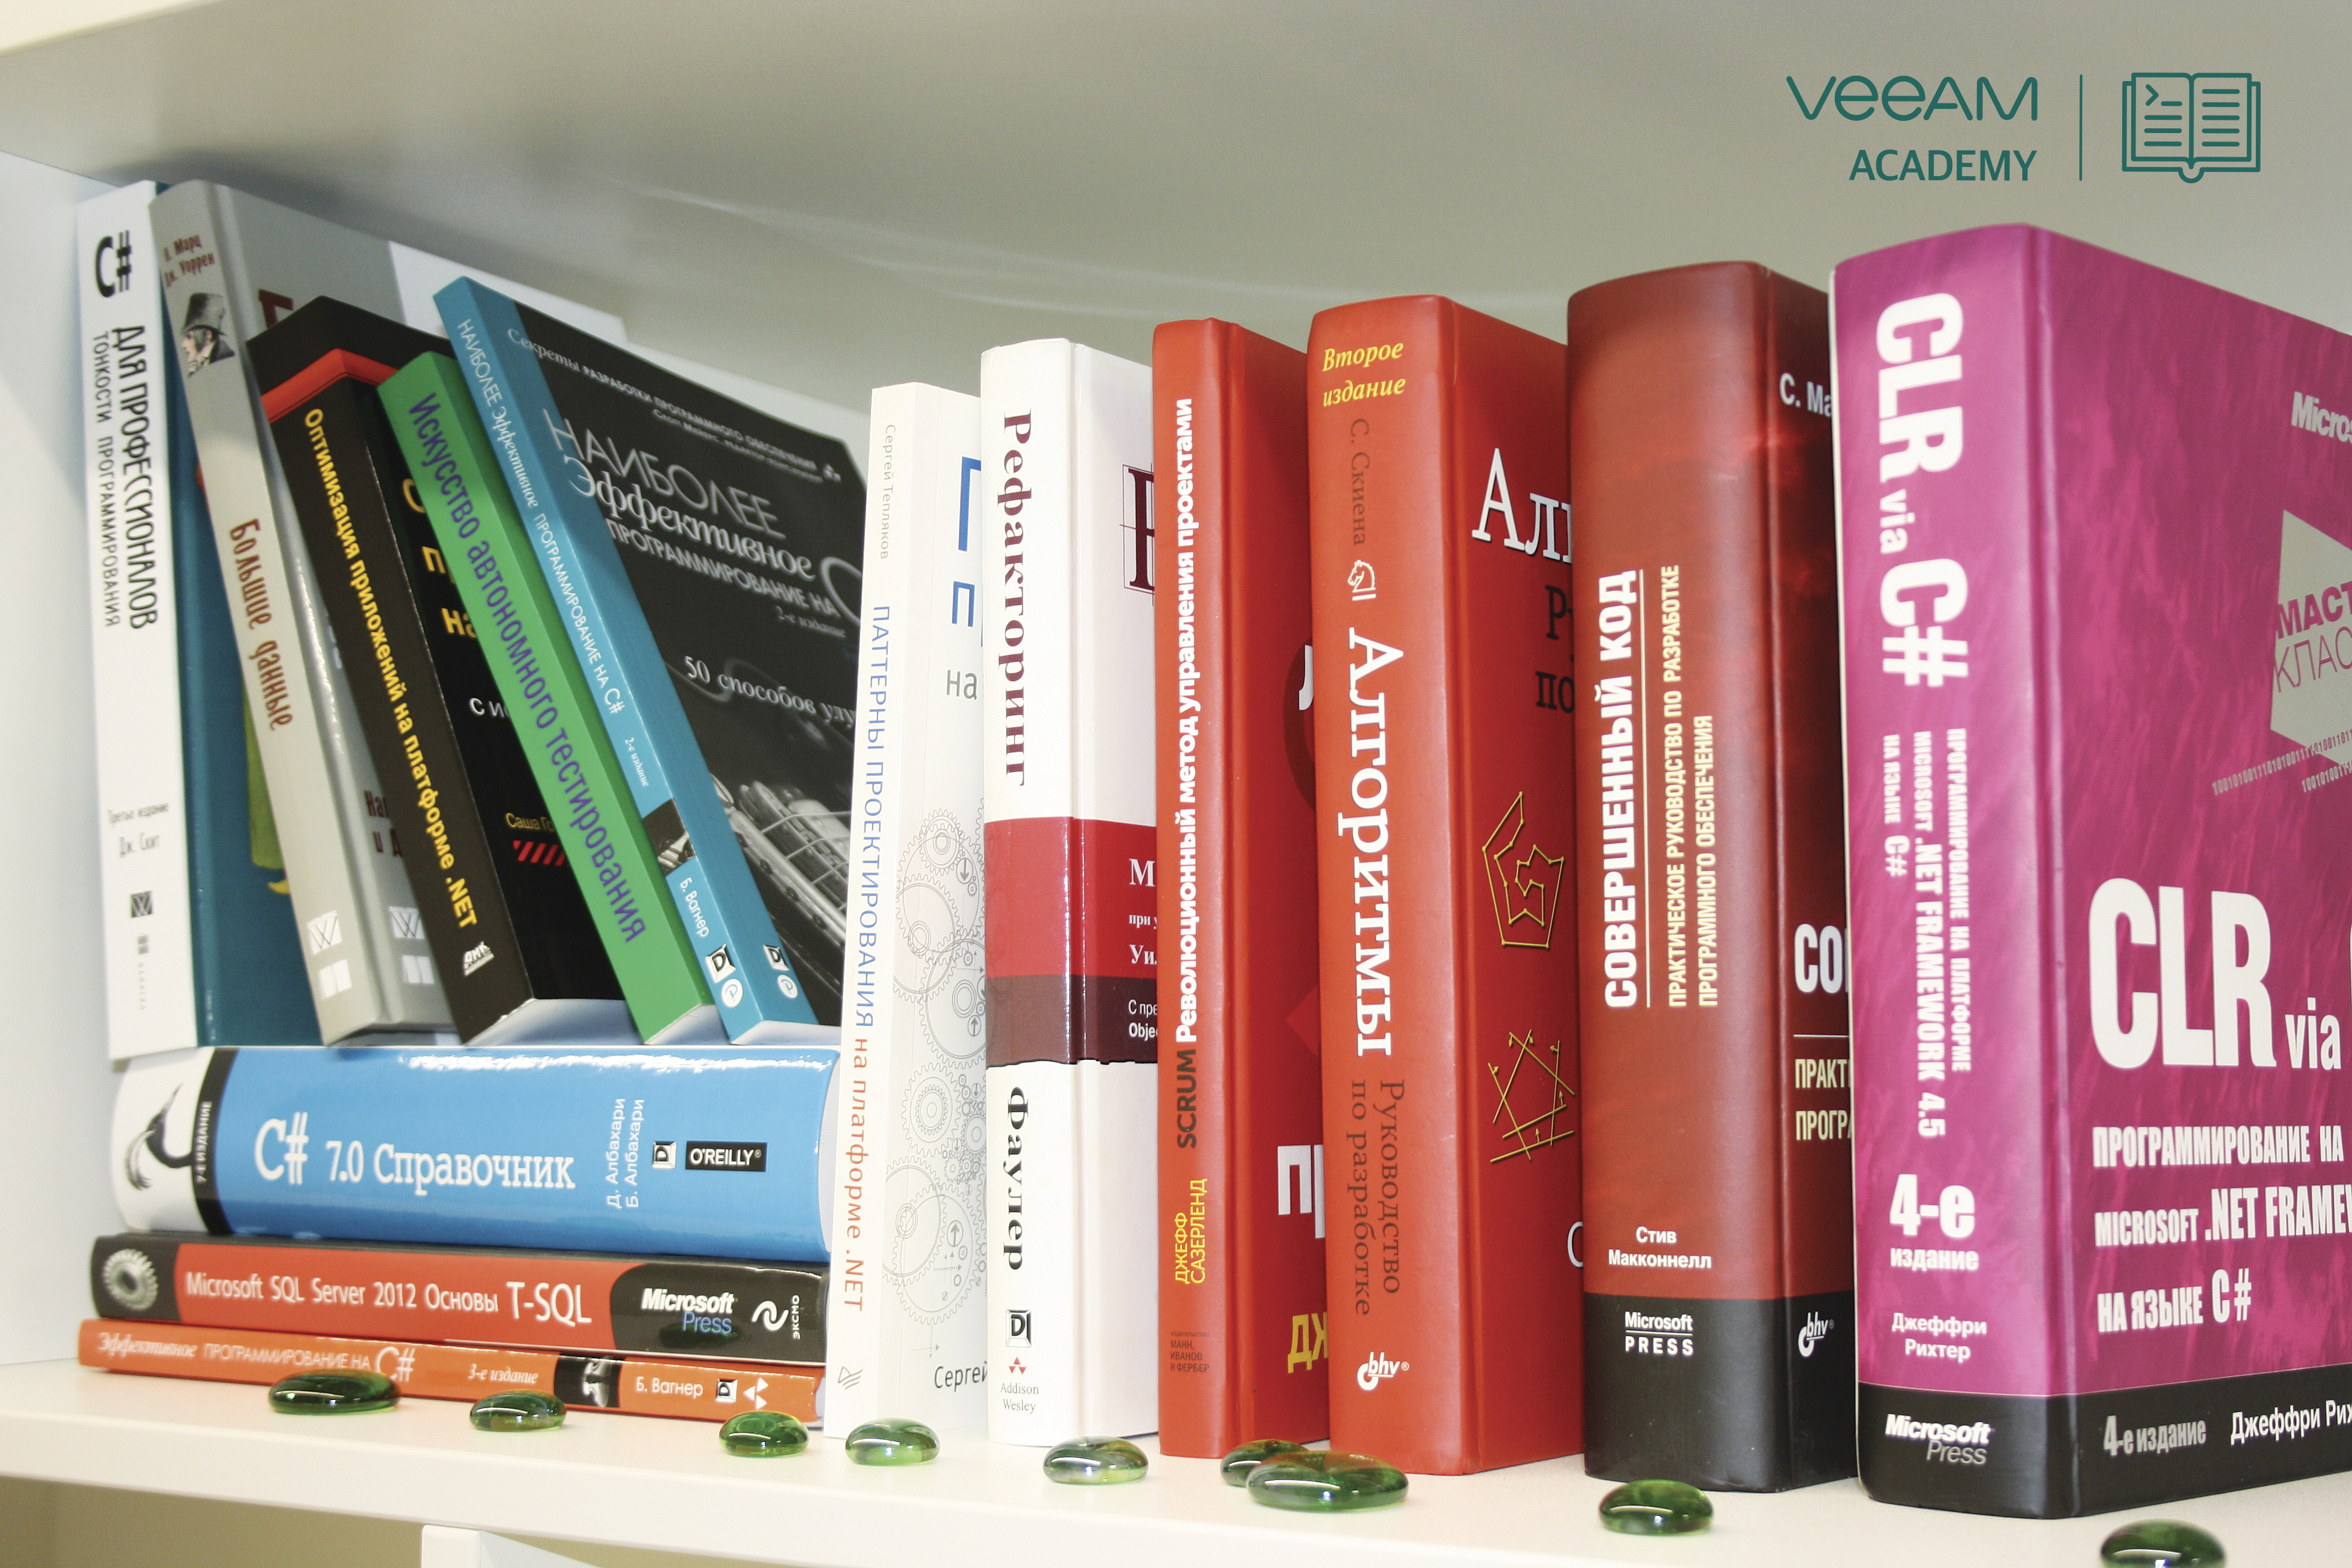 Our bookshelf C # -programmer. And what about you?